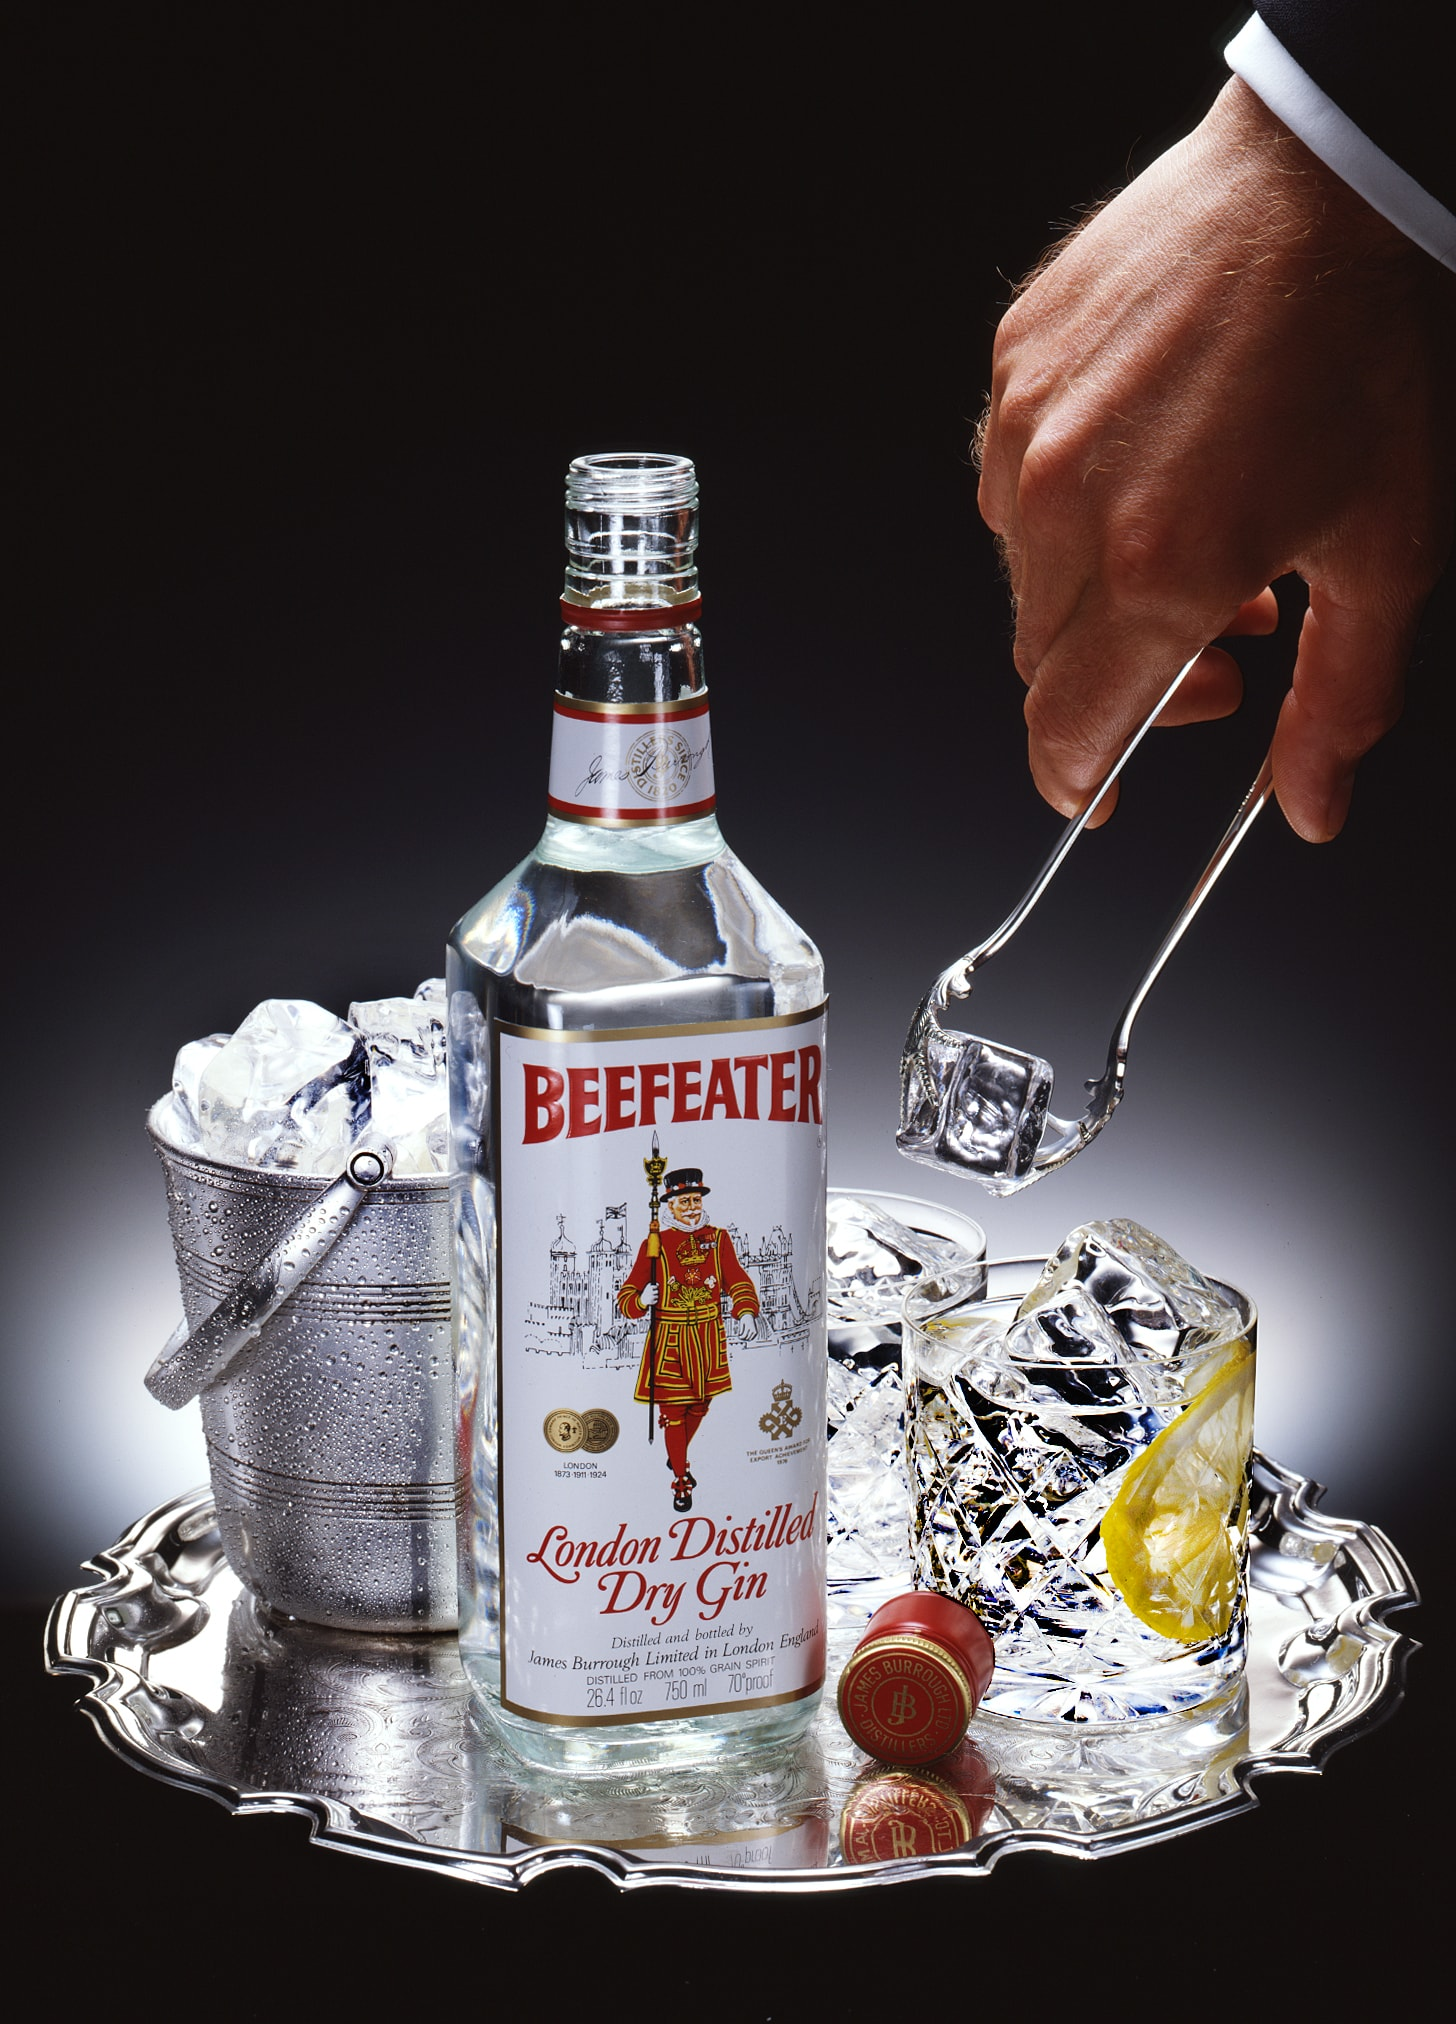 Beefeater Gin by Paul Bussell